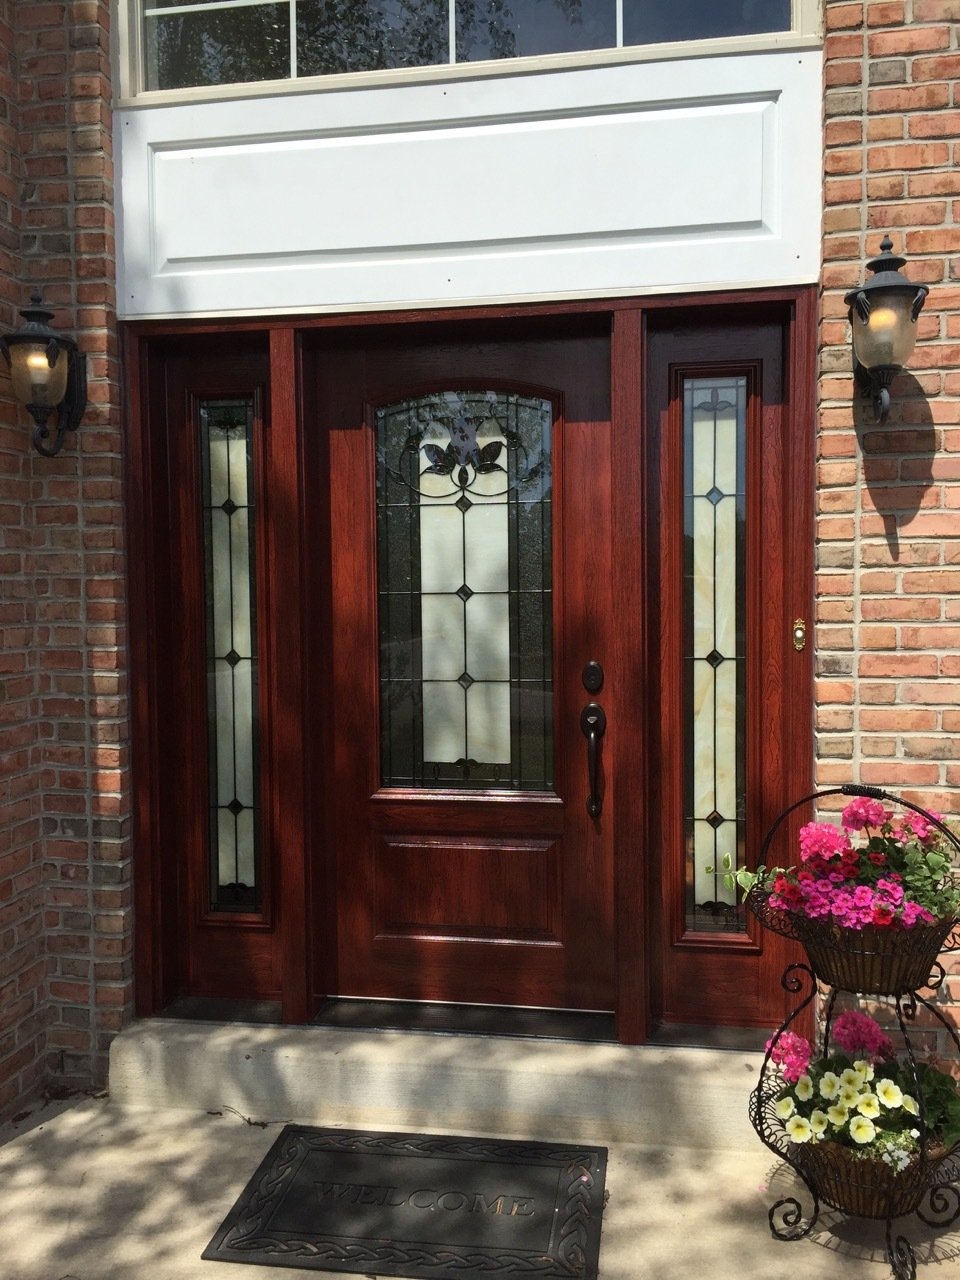 Door installation in berwyn pa collegeville pa doylestown new we extend our services in and around berwyn pa collegeville pa doylestown new hope pa and newtown pa call us at 215 355 1954 now solutioingenieria Choice Image